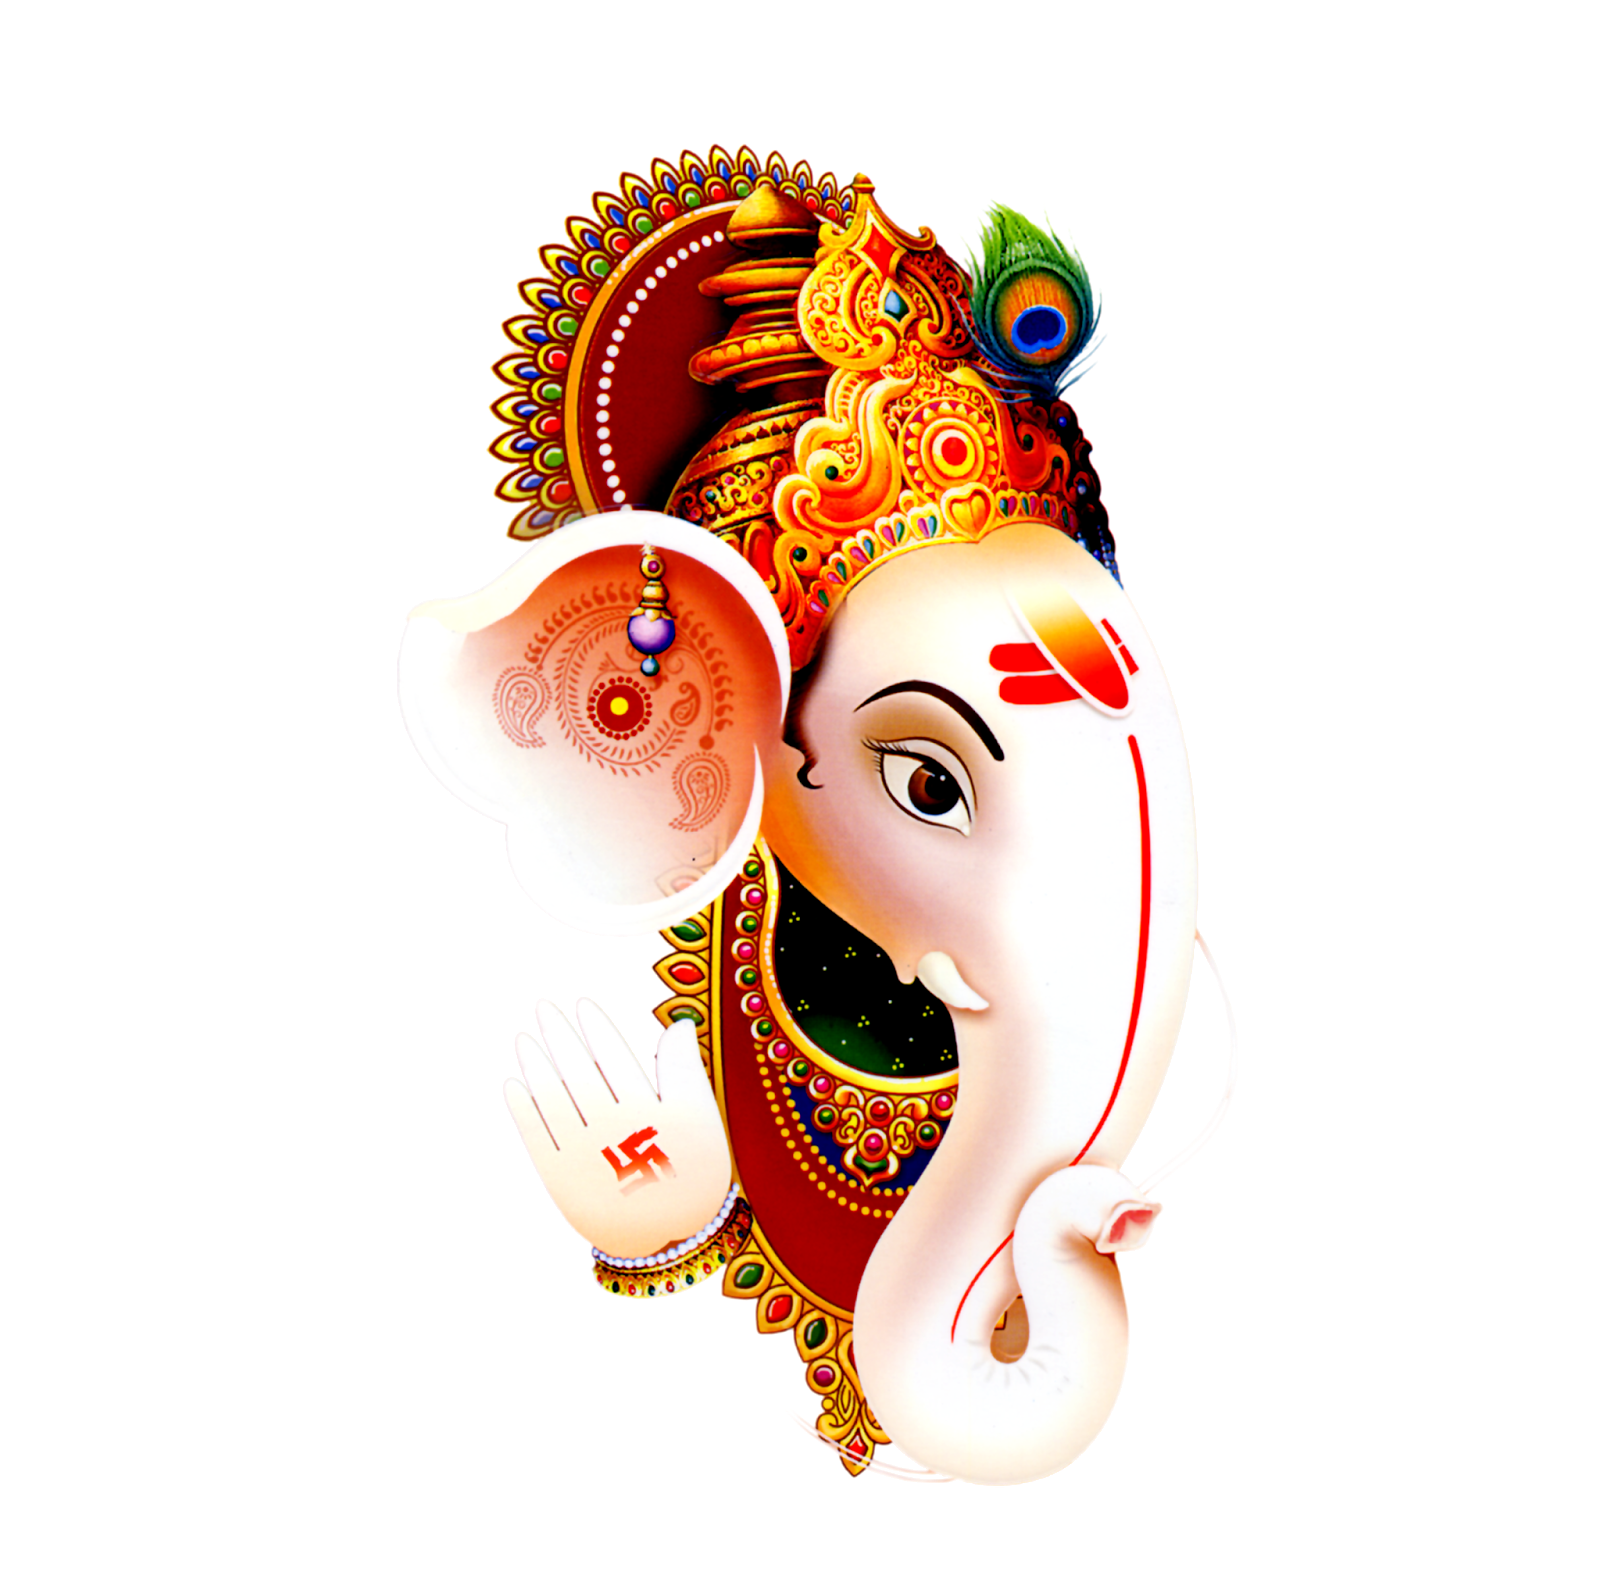 Ganesh vector ji. Lord ganesha png transparent